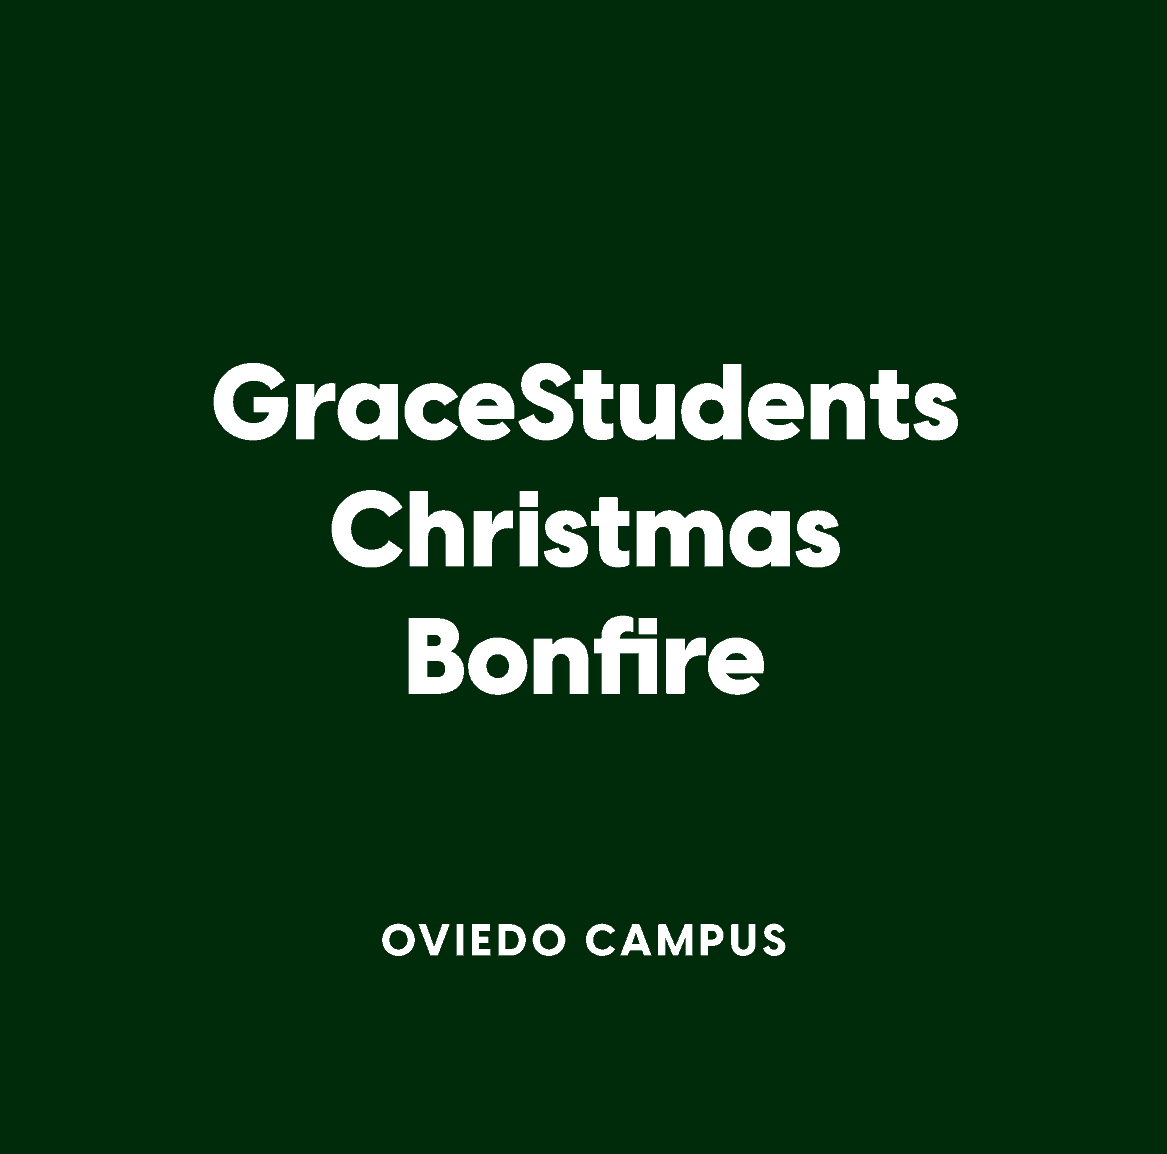 Oviedo GraceStudents Christmas Bonfire